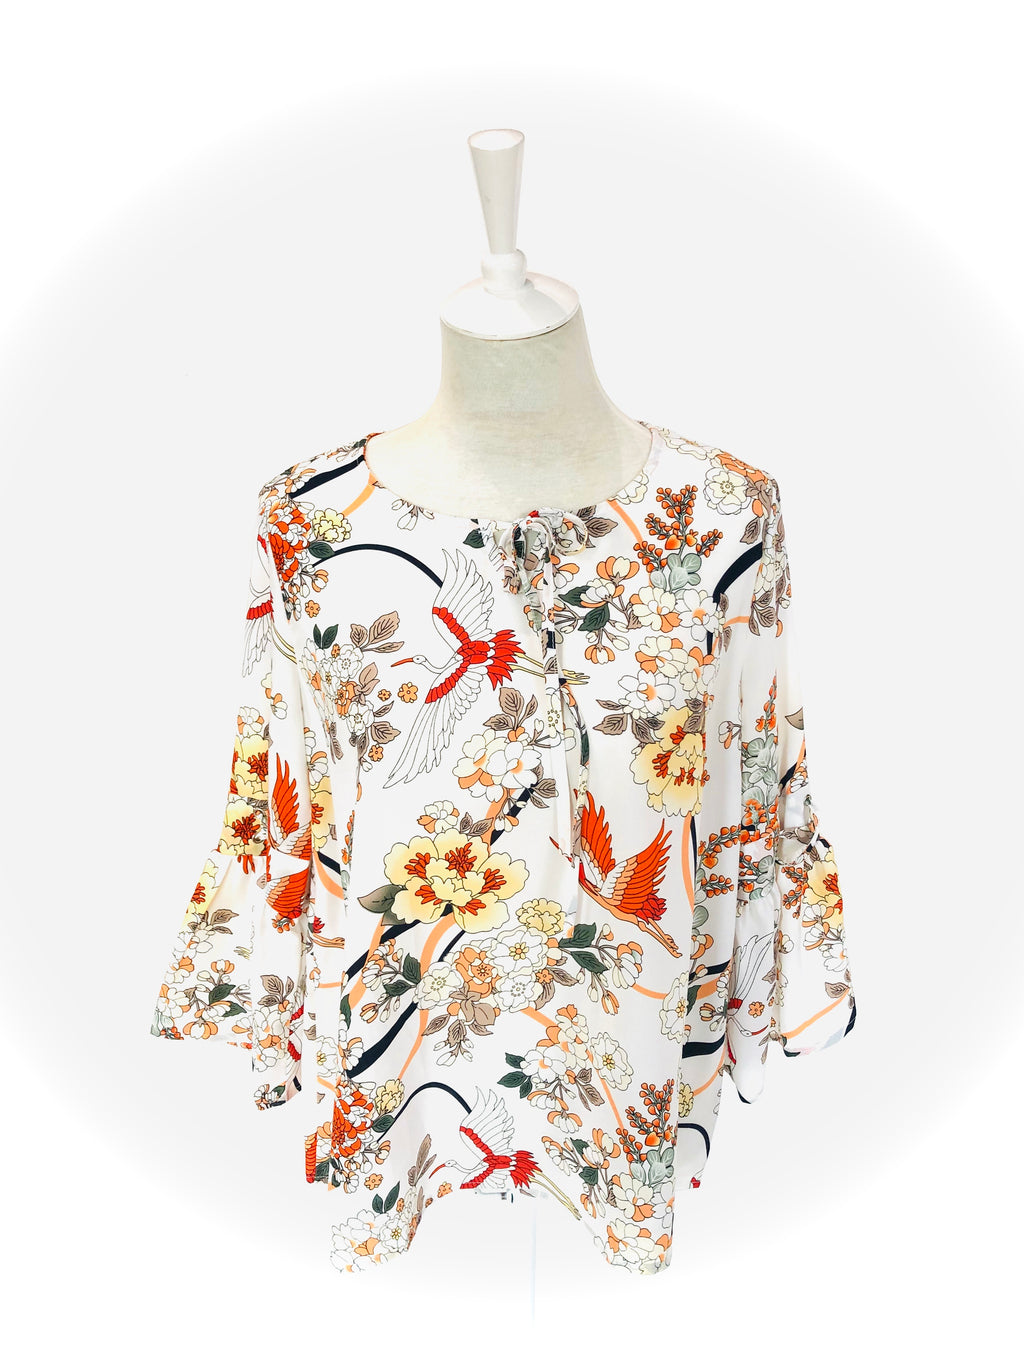 Printed Top with Bird and Floral Print